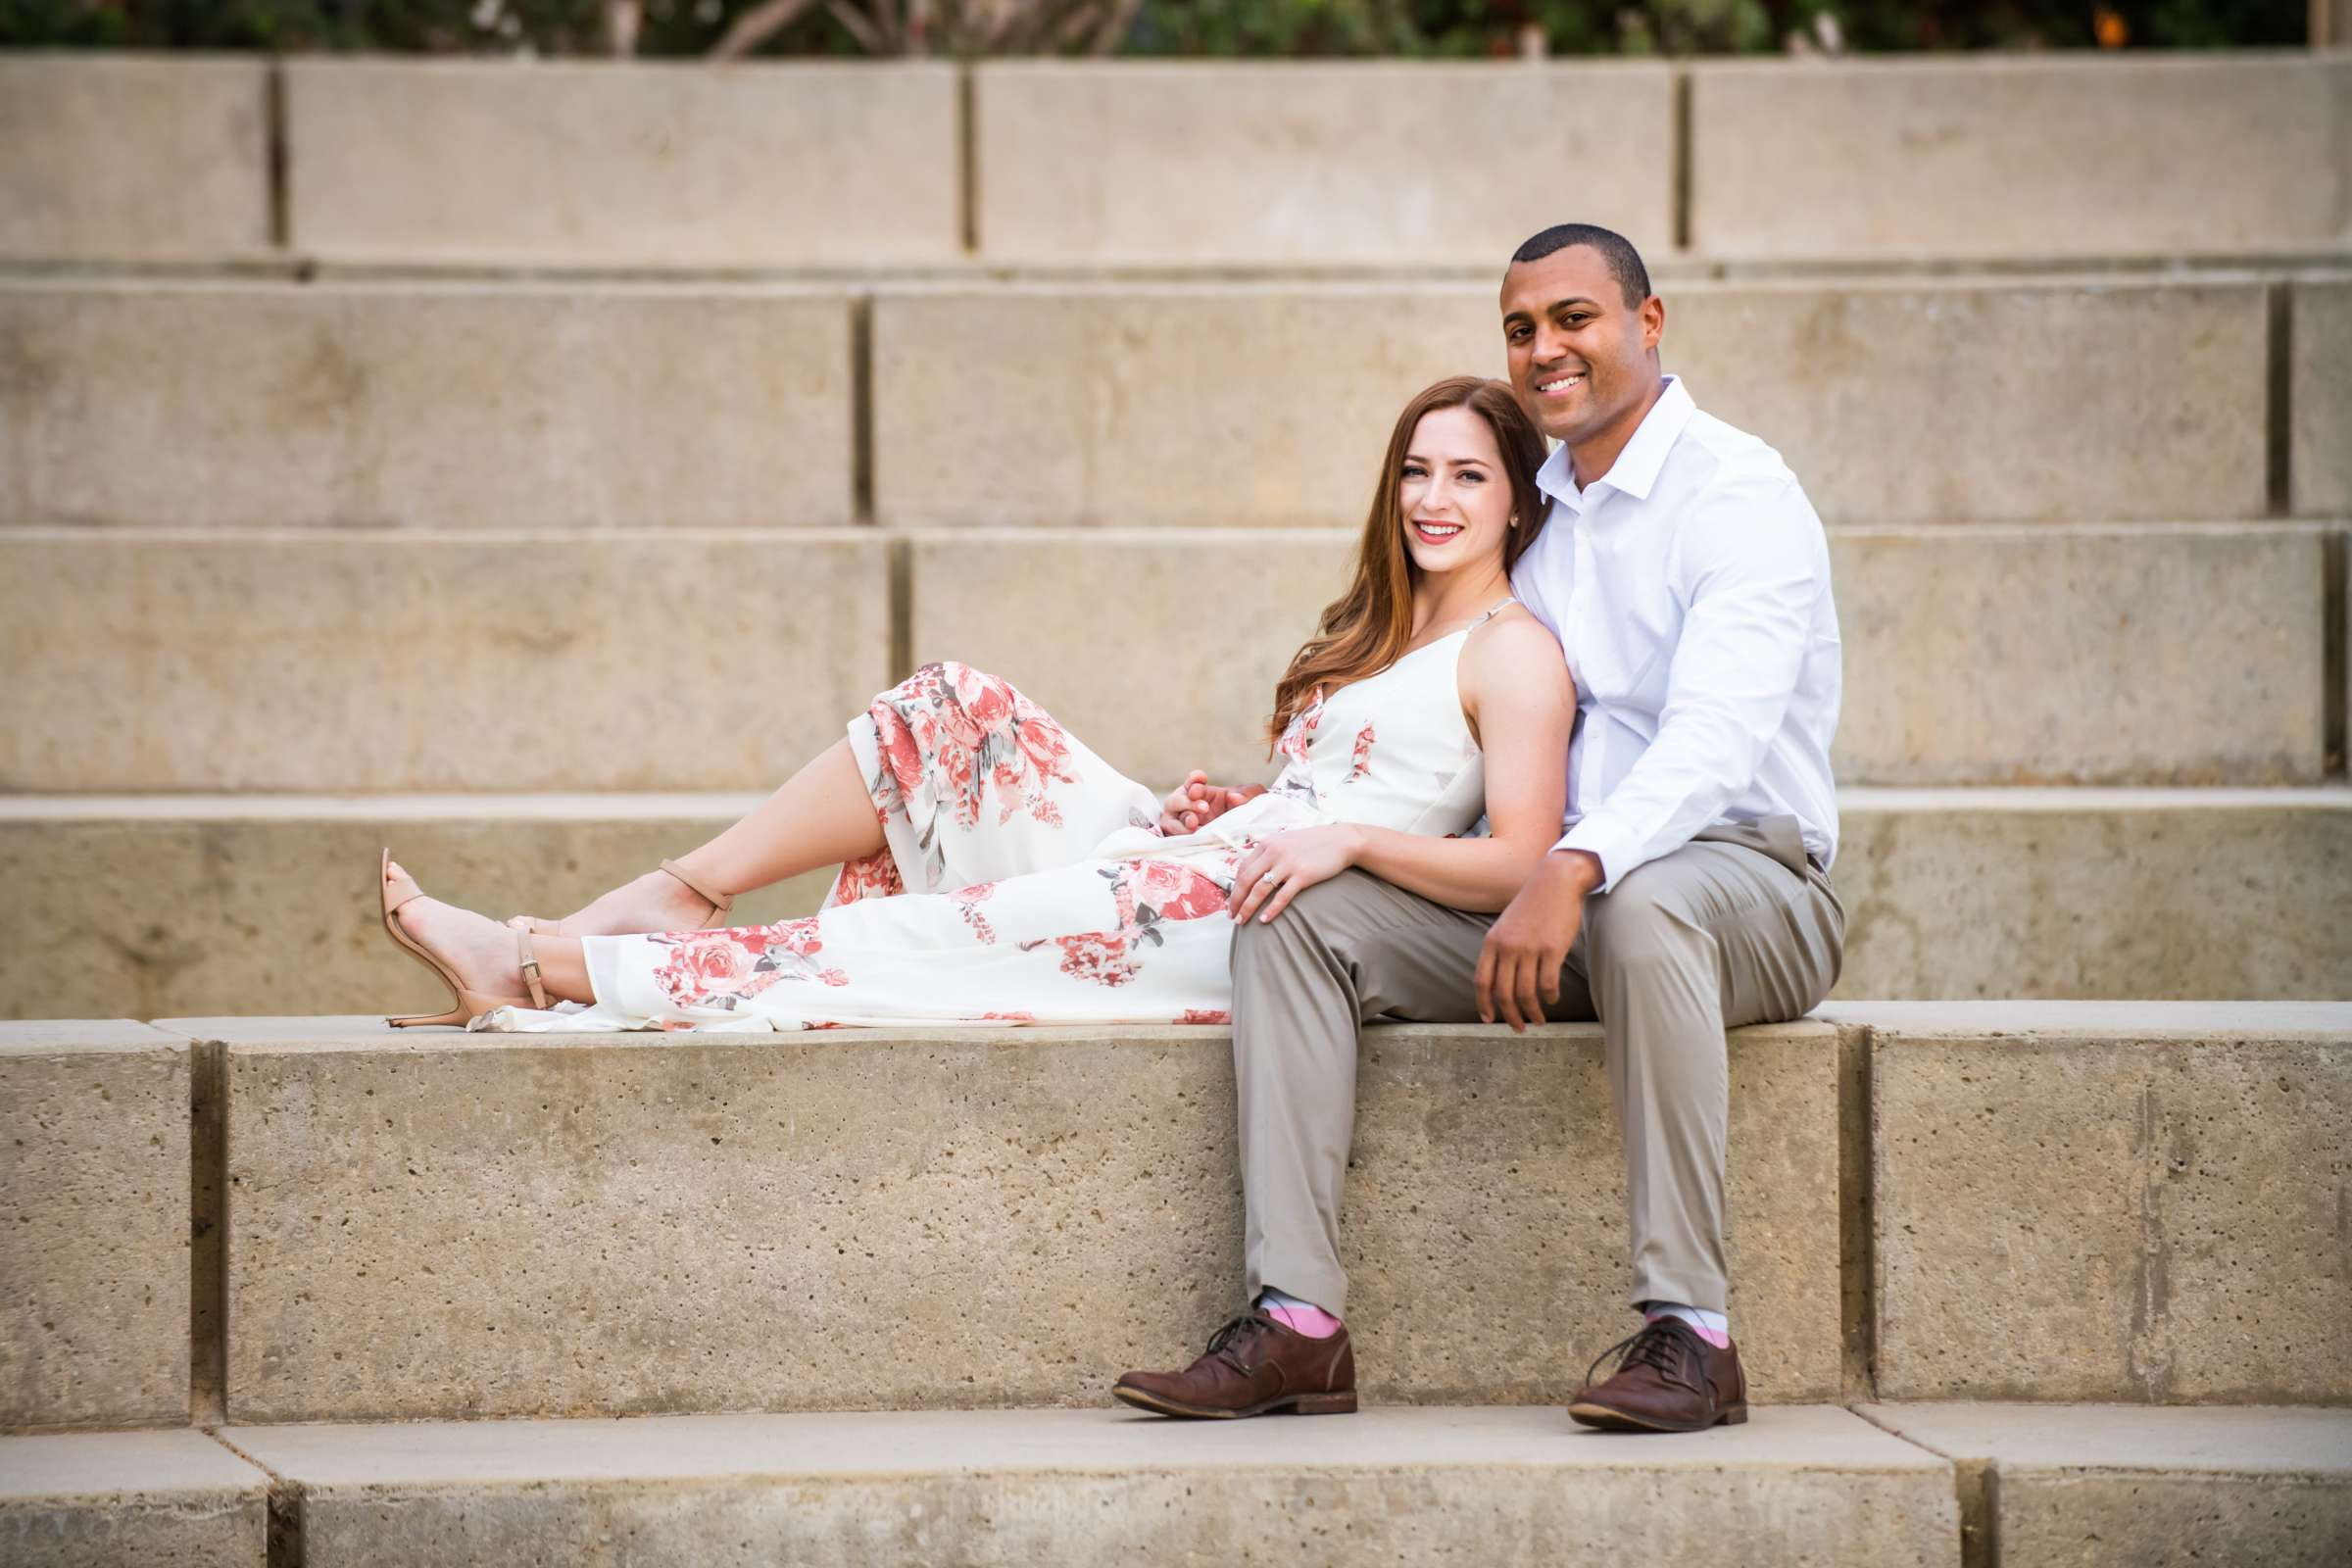 Engagement, Alexia and Kalin Engagement Photo #617328 by True Photography